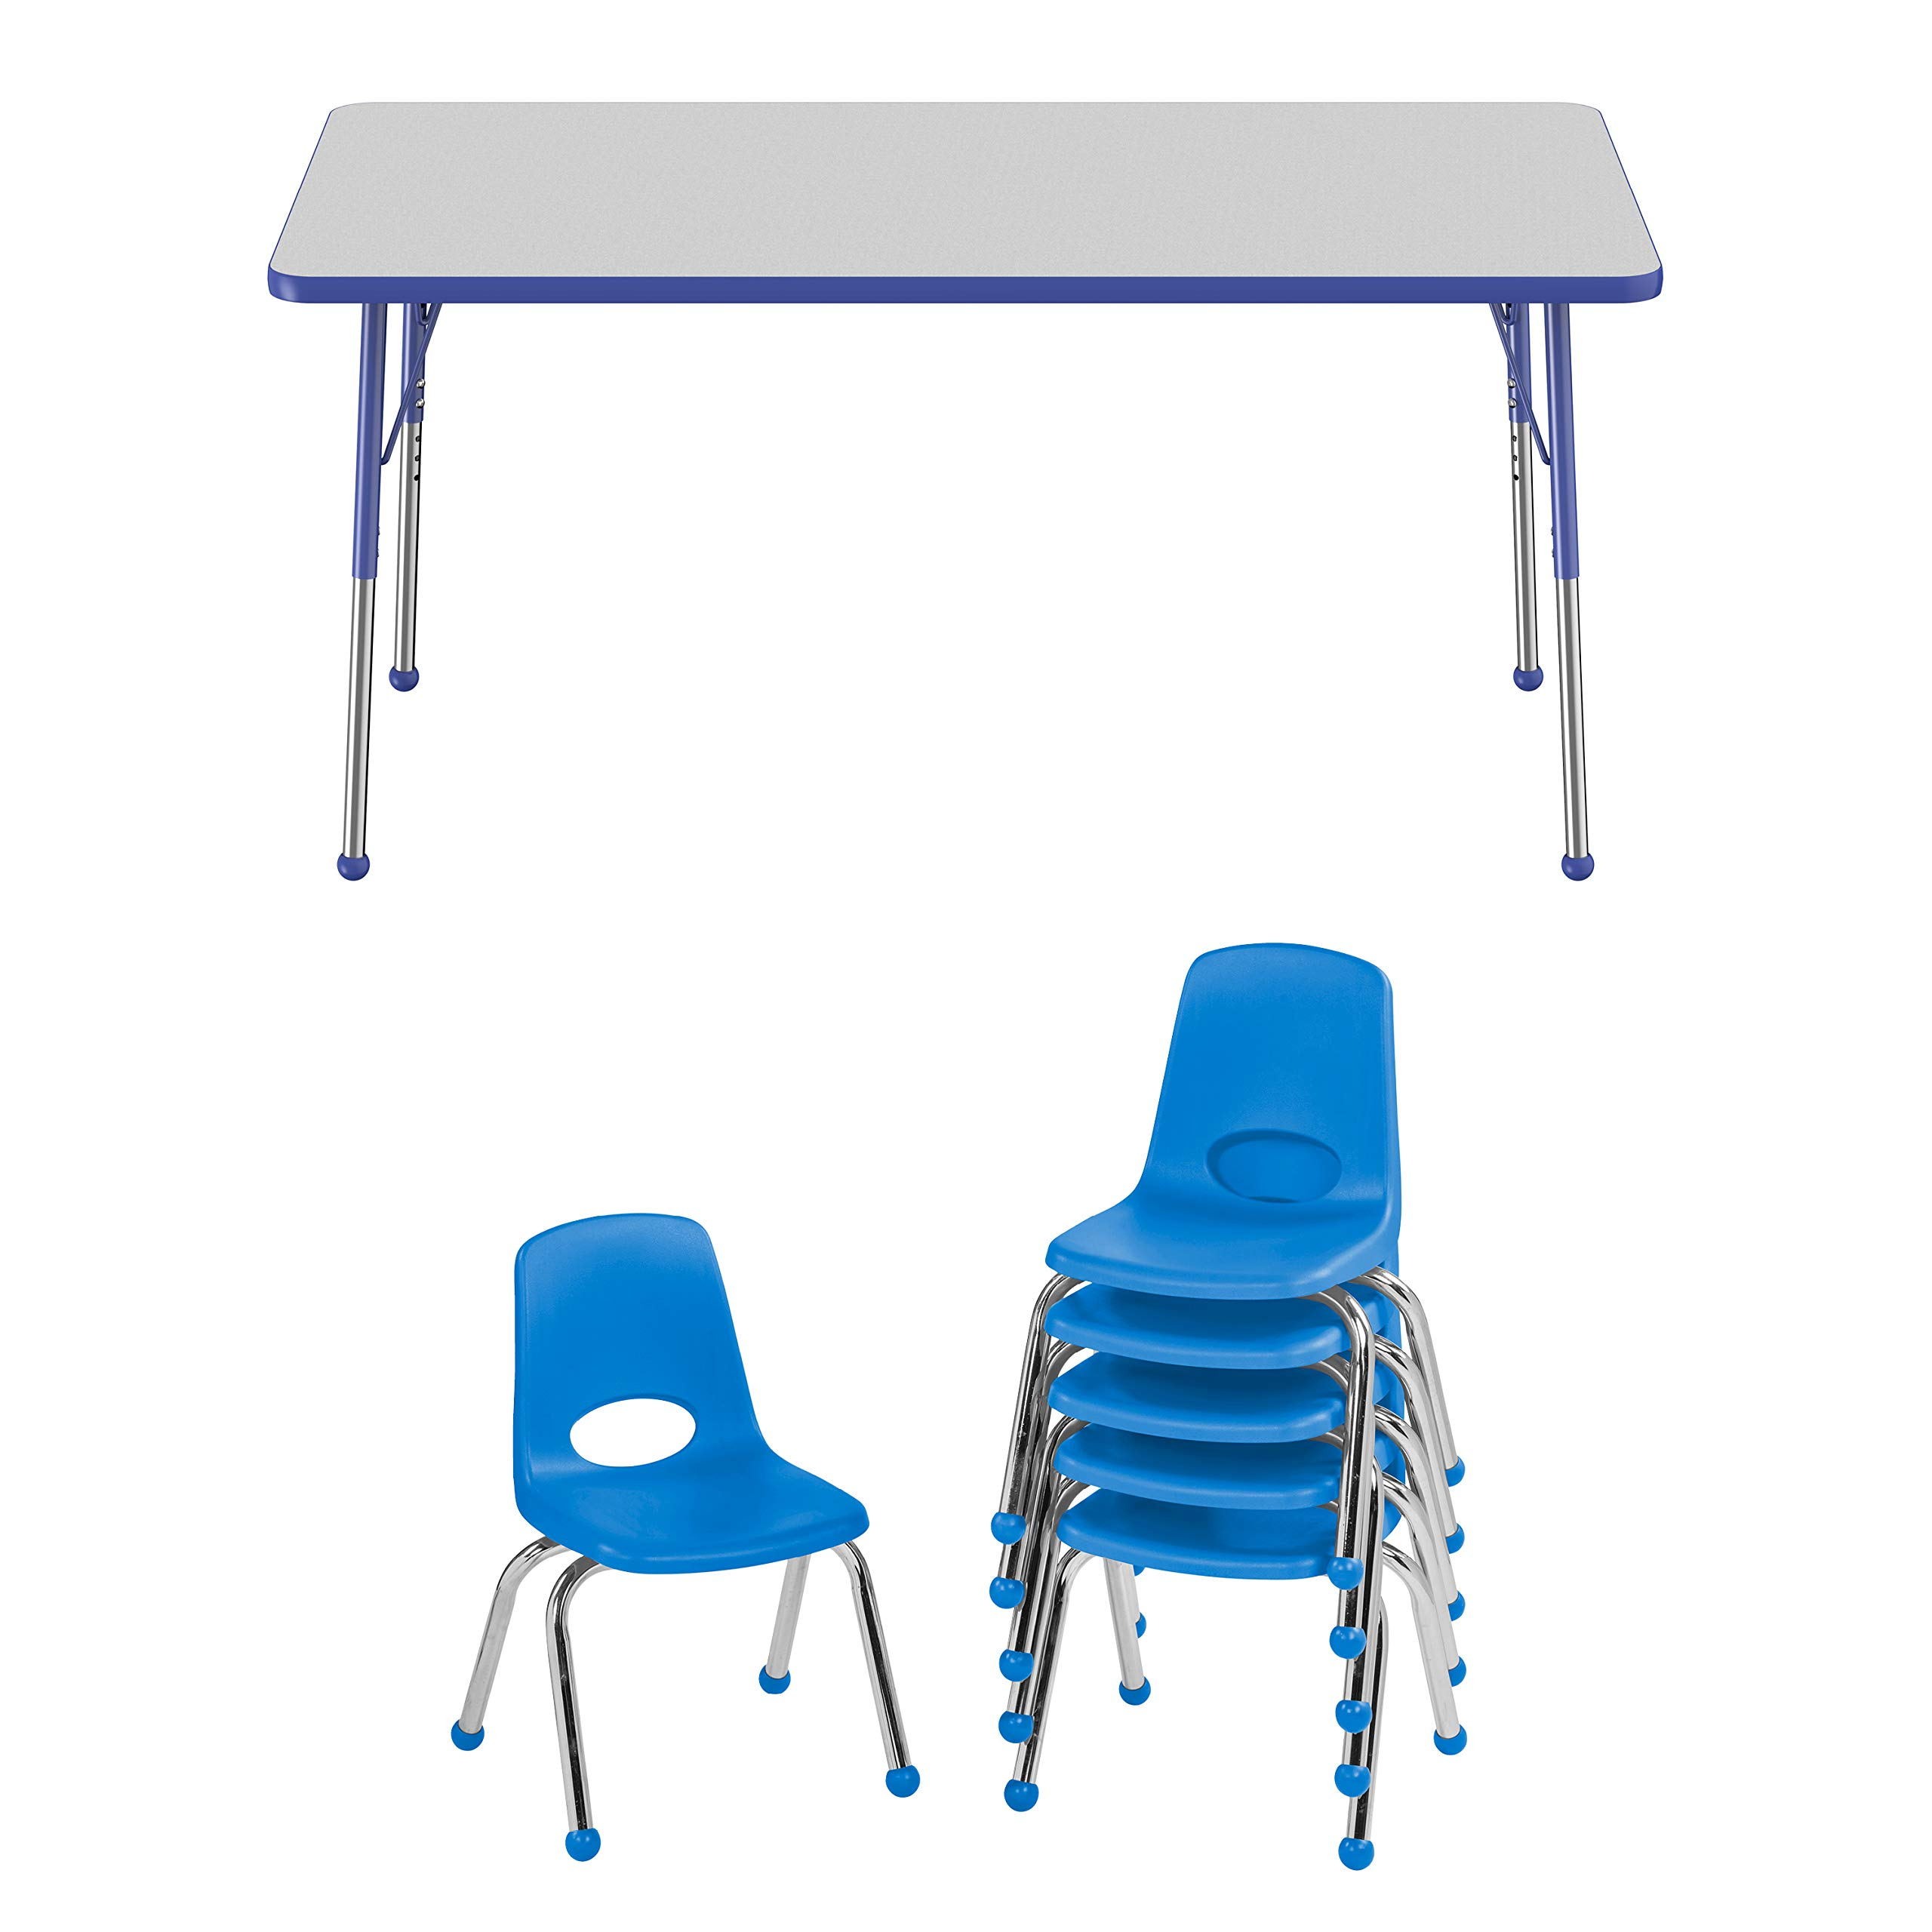 FDP Rectangle Activity School and Office Table (30 x 60 inch), Gray Top and Blue Edge, Standard Legs with Ball Glides and Six 12 inch Blue School Stack Chairs by Factory Direct Partners